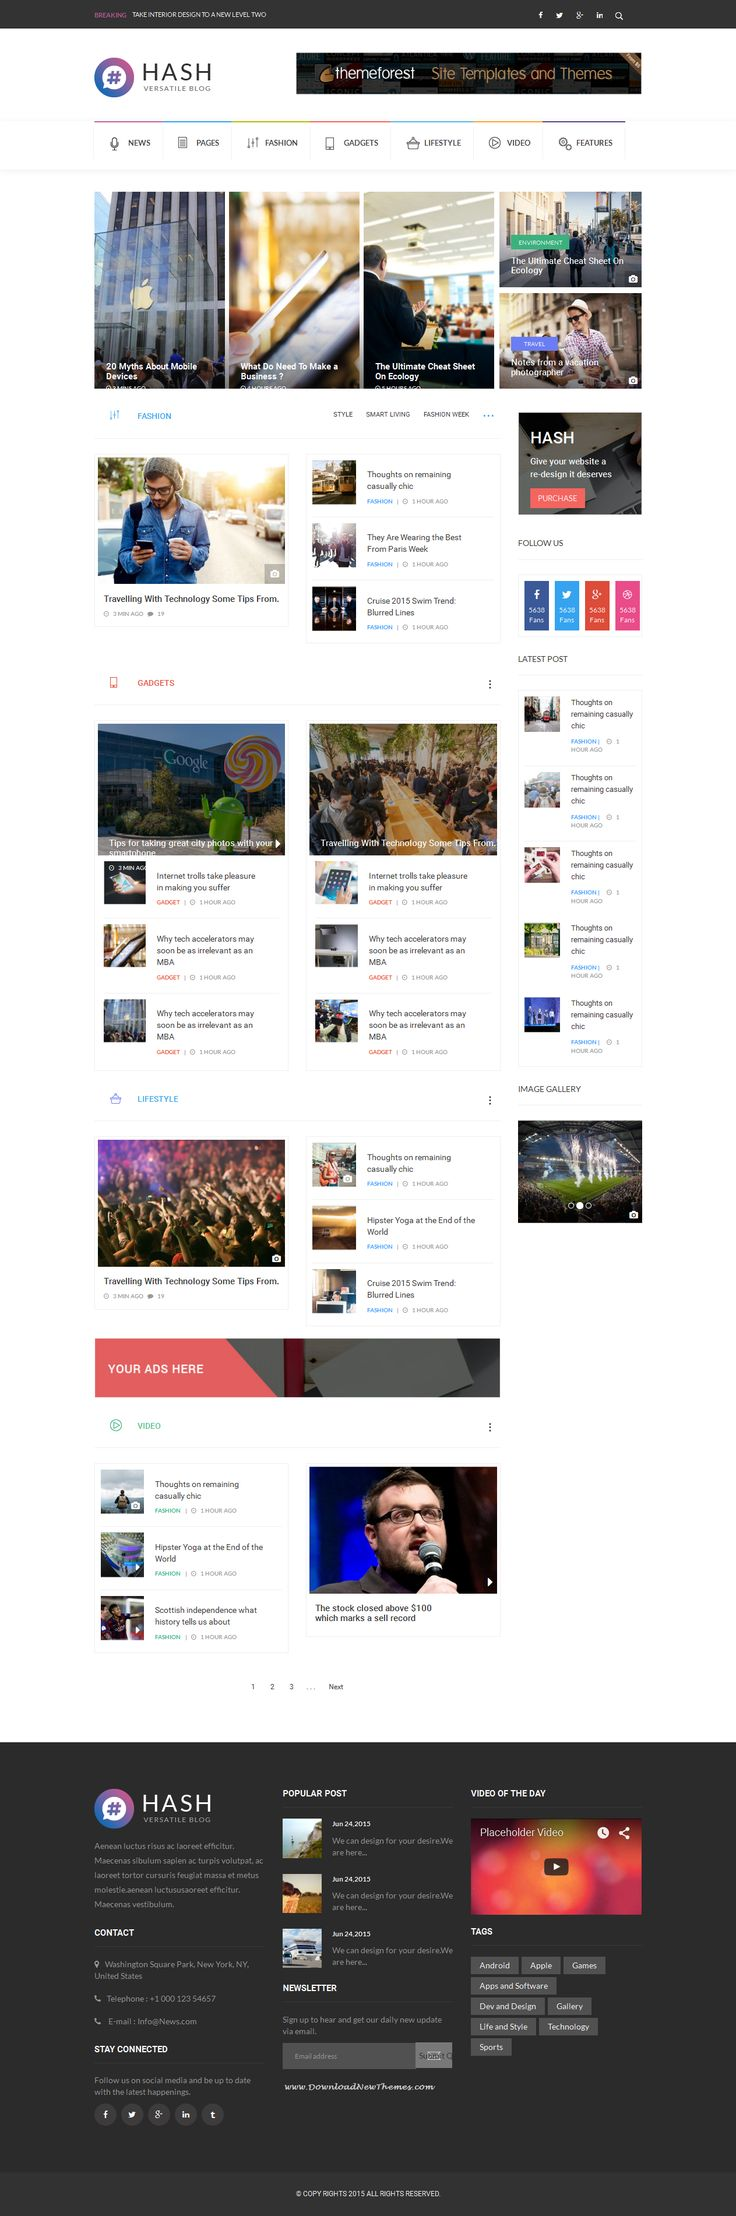 Hash is an new premium #HTML template for News and Magazine website. This theme is compatible with Bootstrap framework. #website